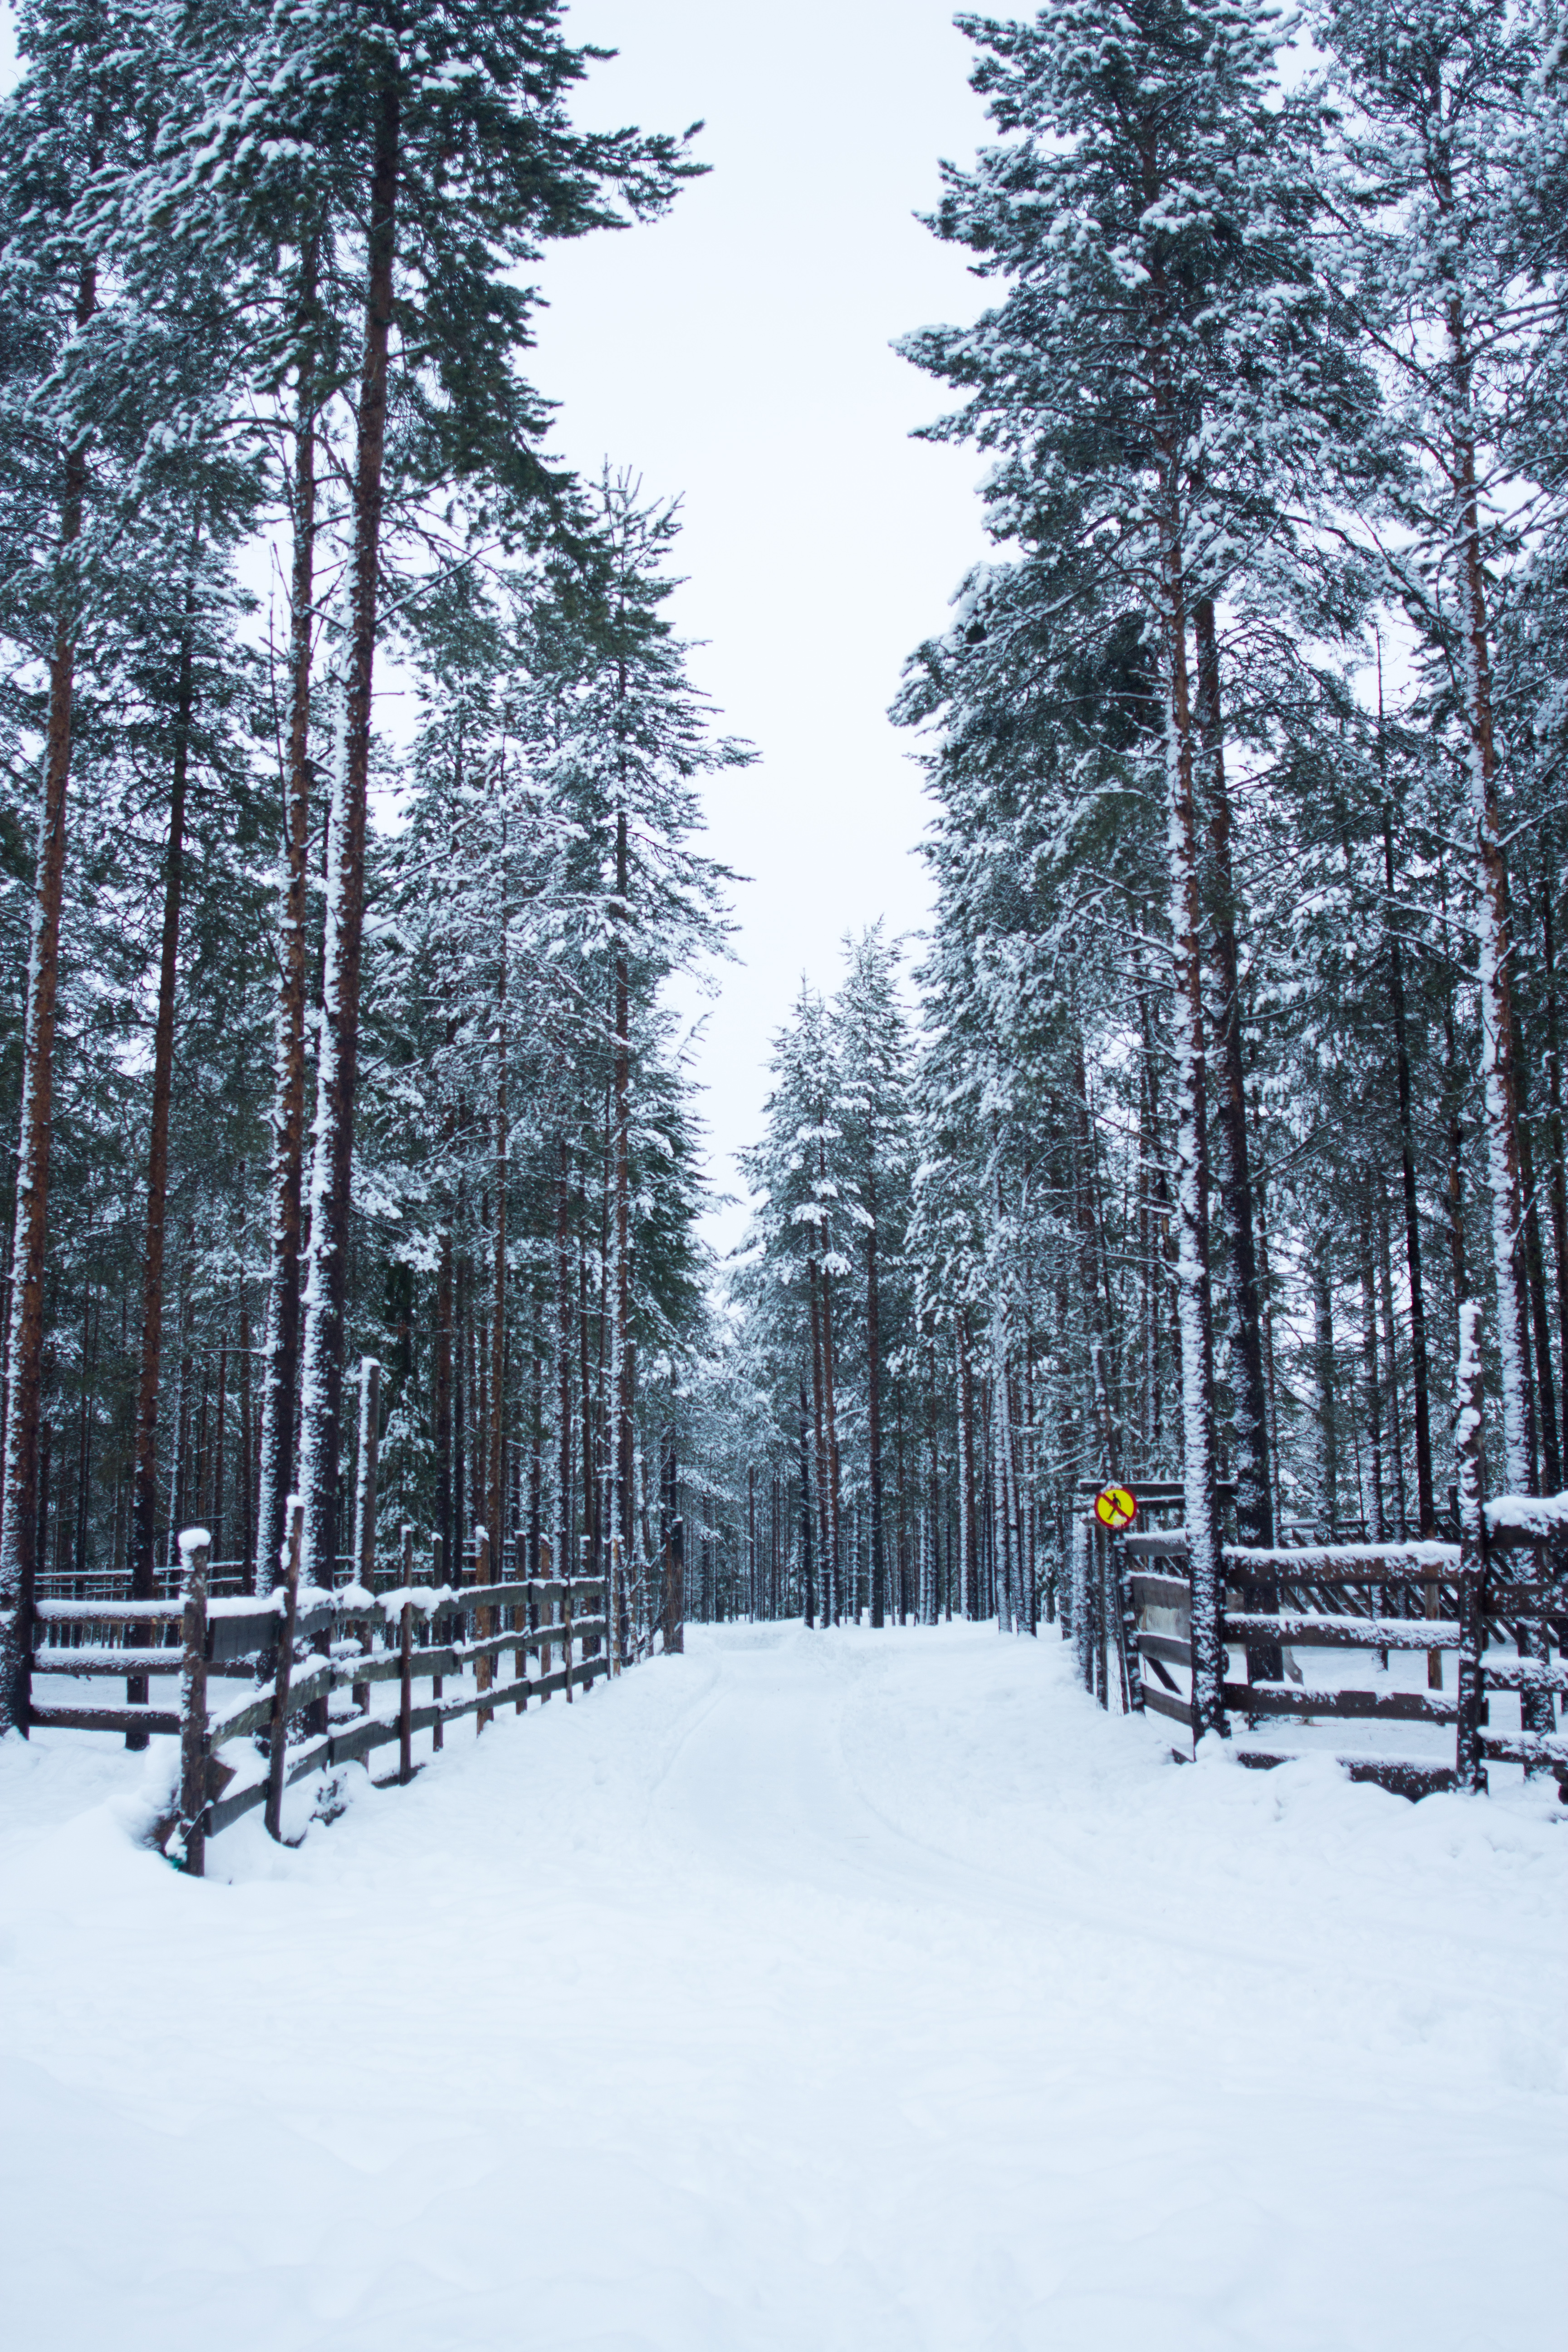 How To Survive An Ice-Cold Finnish Winter